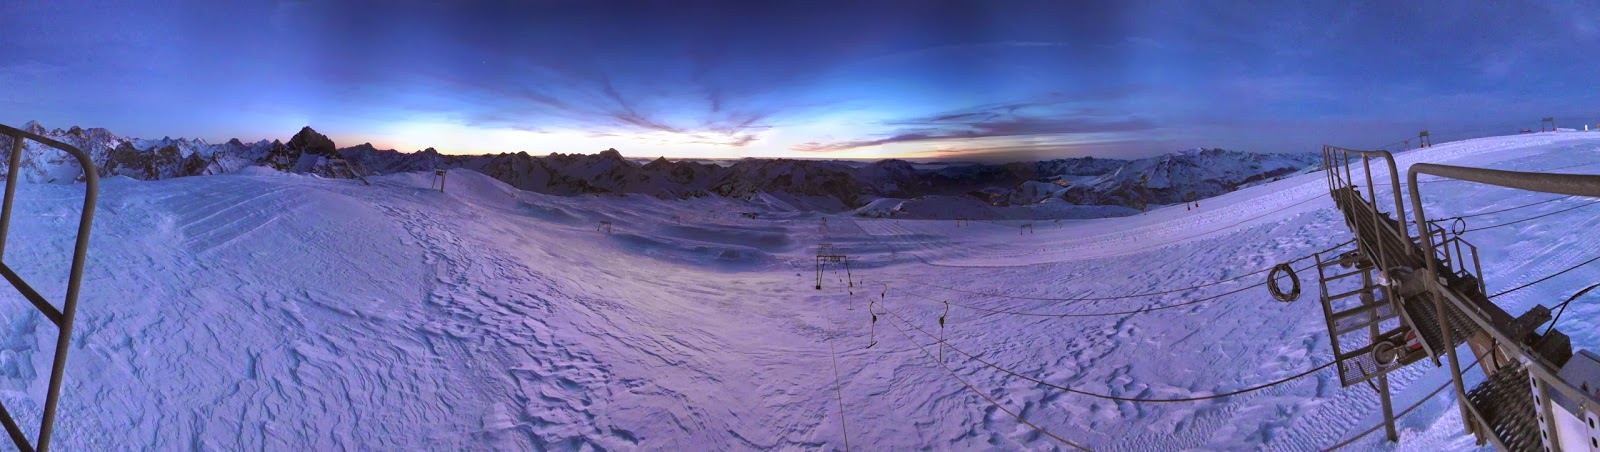 Les Deux Alpes Glacier Webcam, French Alps Webcam, Oisans webcams